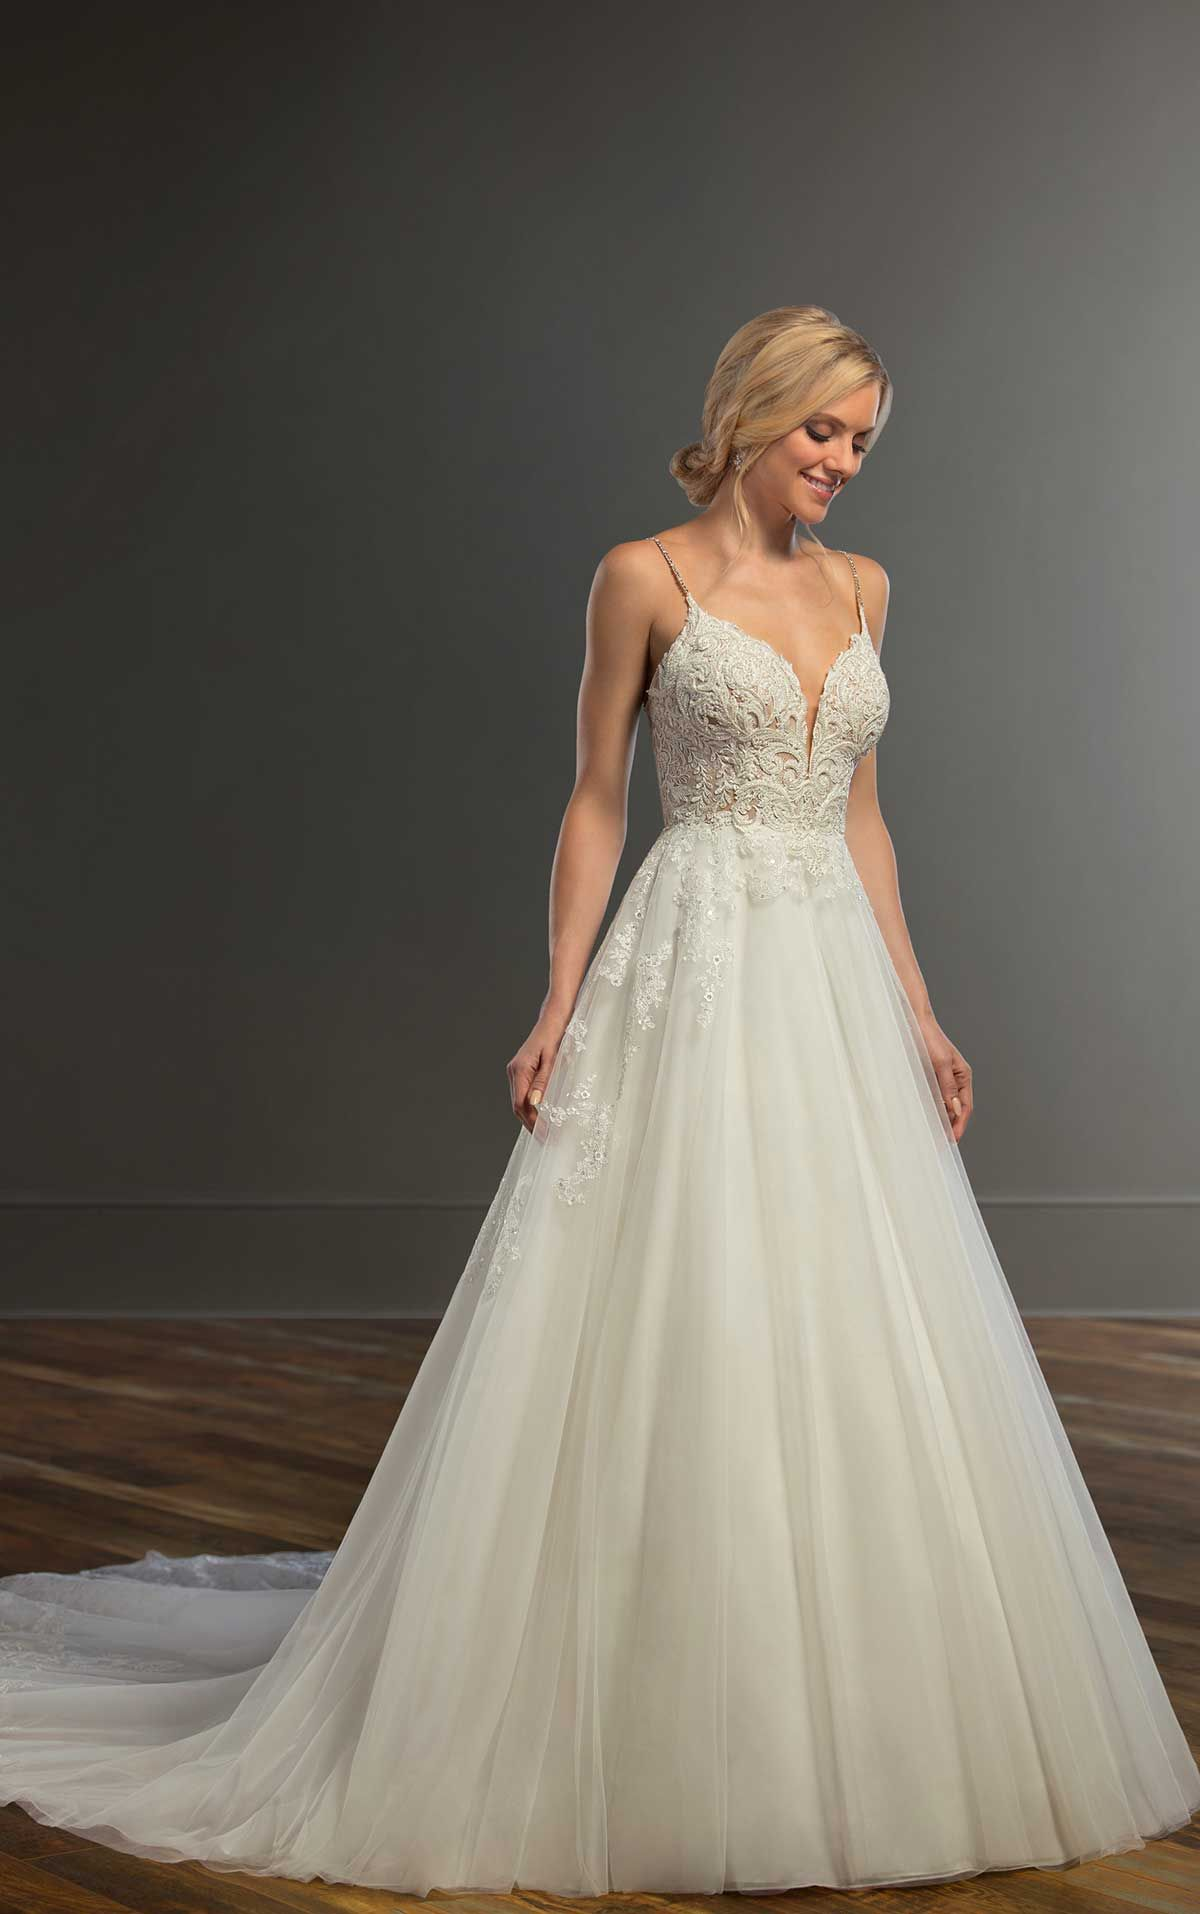 Romantic Princess Style Wedding Gown